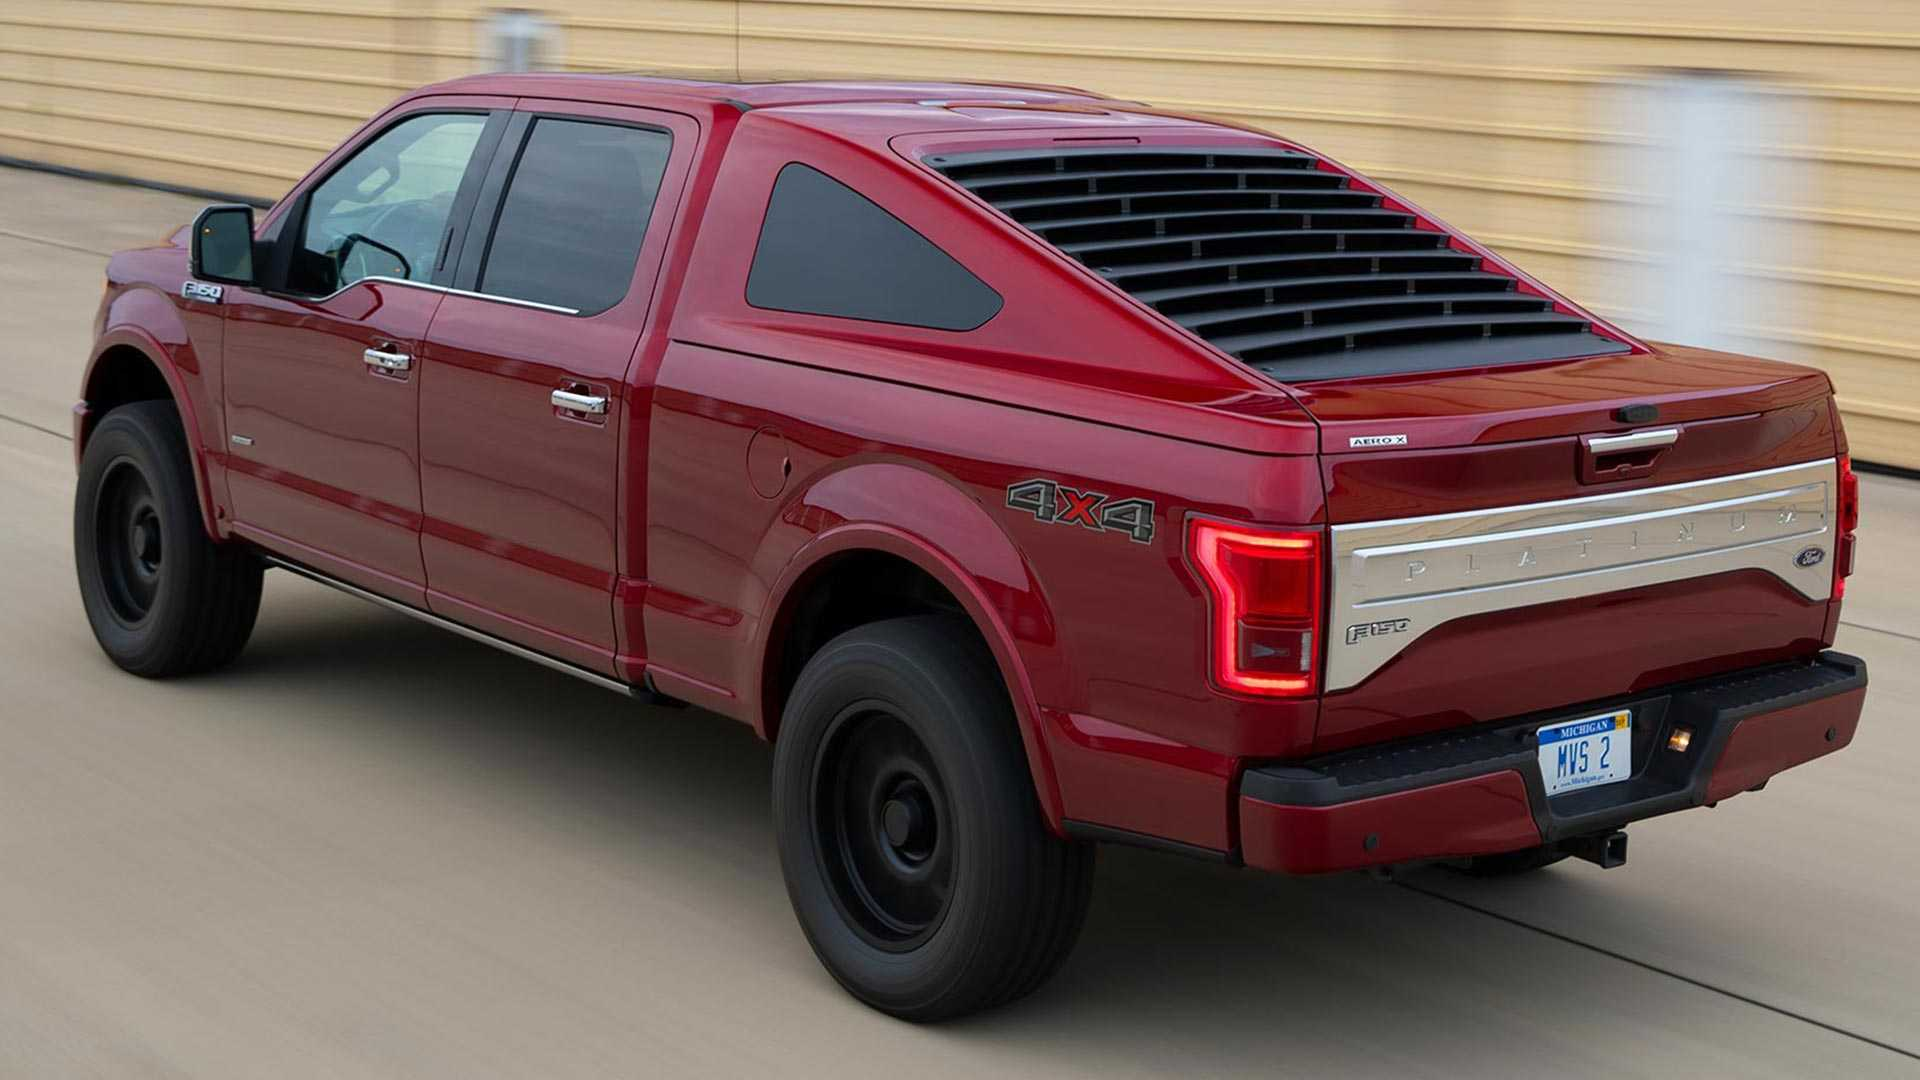 - Fastback Bed Caps Could Become The Hottest Thing For Trucks [UPDATE]